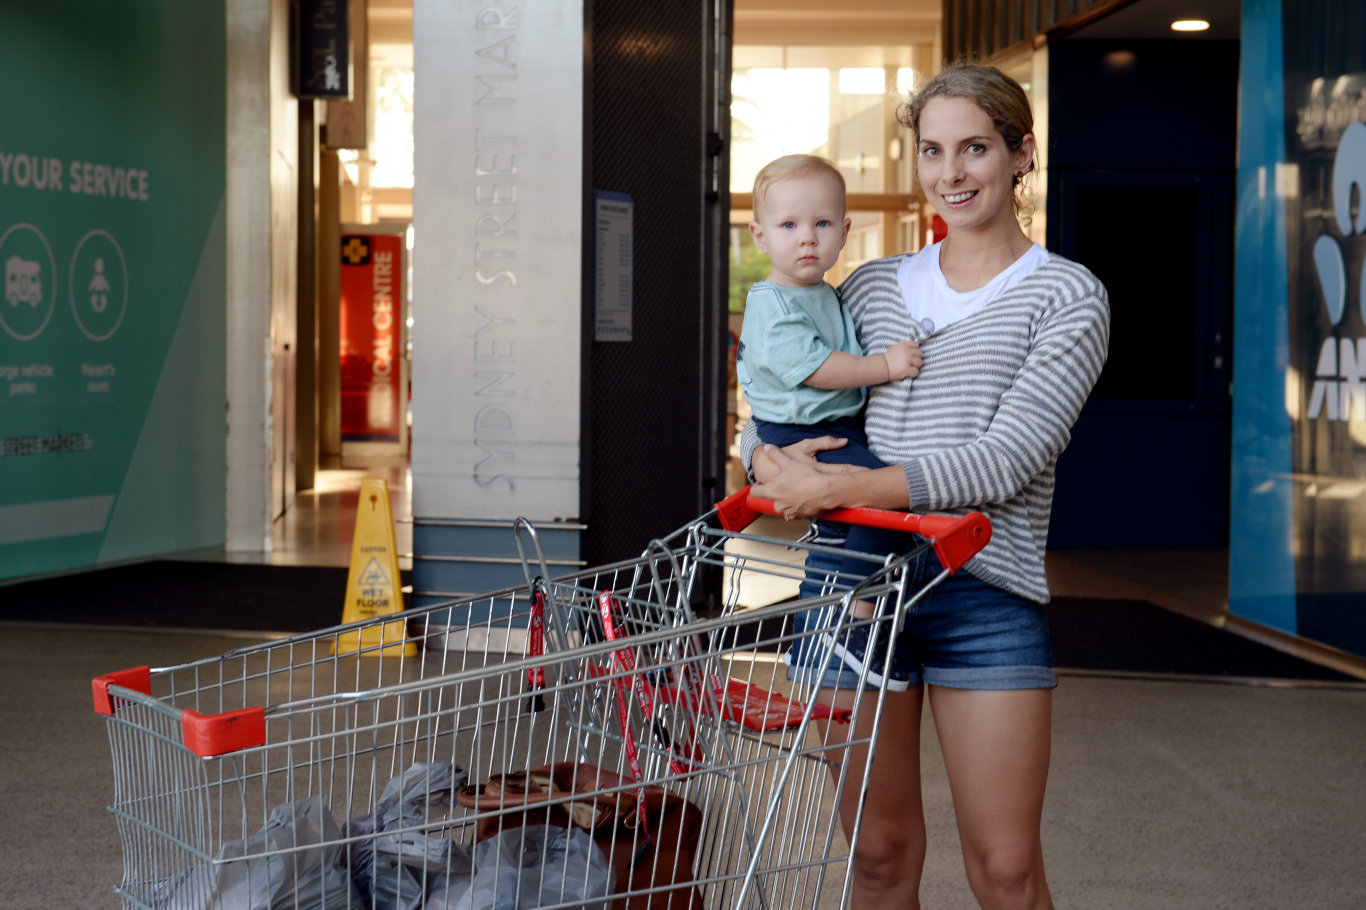 FAMILY SAVINGS: Richmond resident Isaac McEwan, 2, in the shopping cart with the family's groceries after his mother Juanita McEwan completed her weekly shop at Coles, Sydney St.